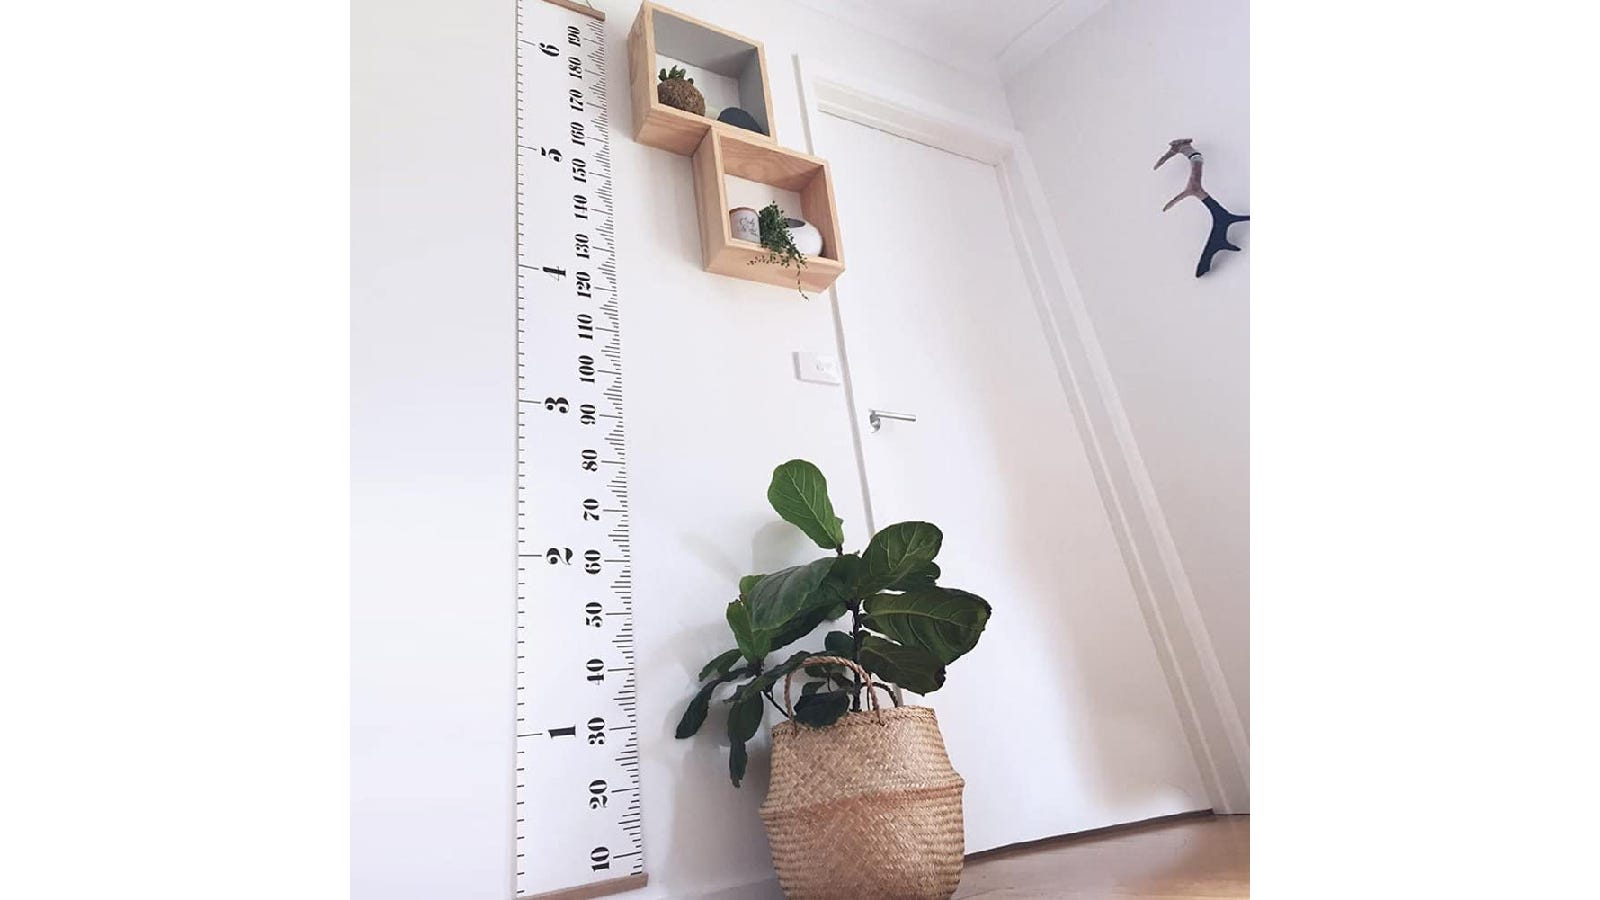 A white ruler growth chart next to a potted plant on the floor and two wooden shelves on the wall.